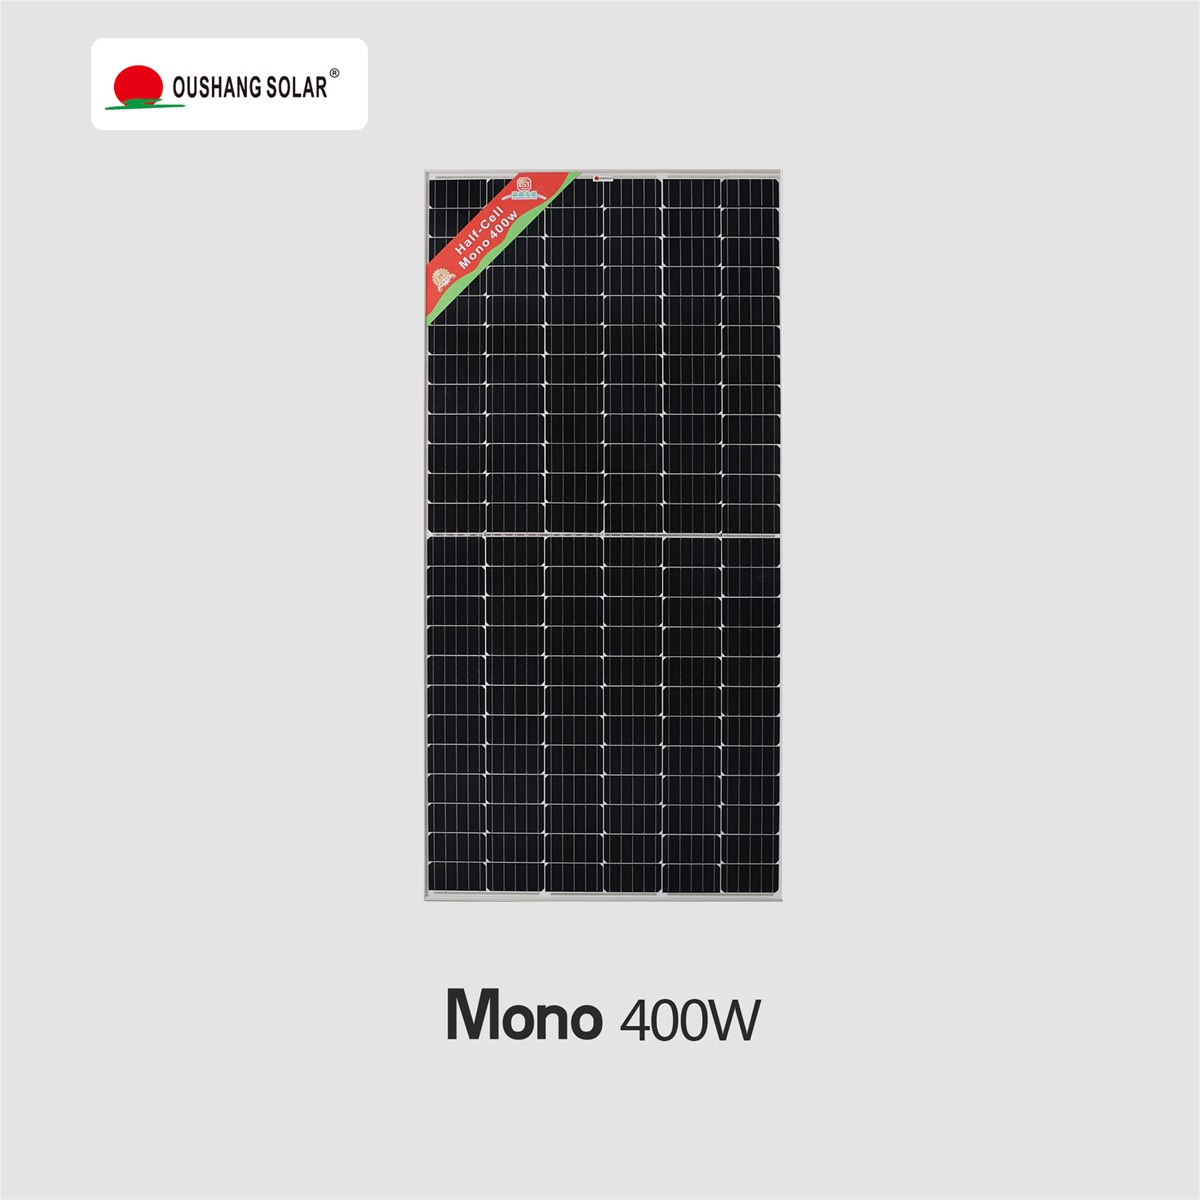 Monocrystaline Solar Panel 410 Watts